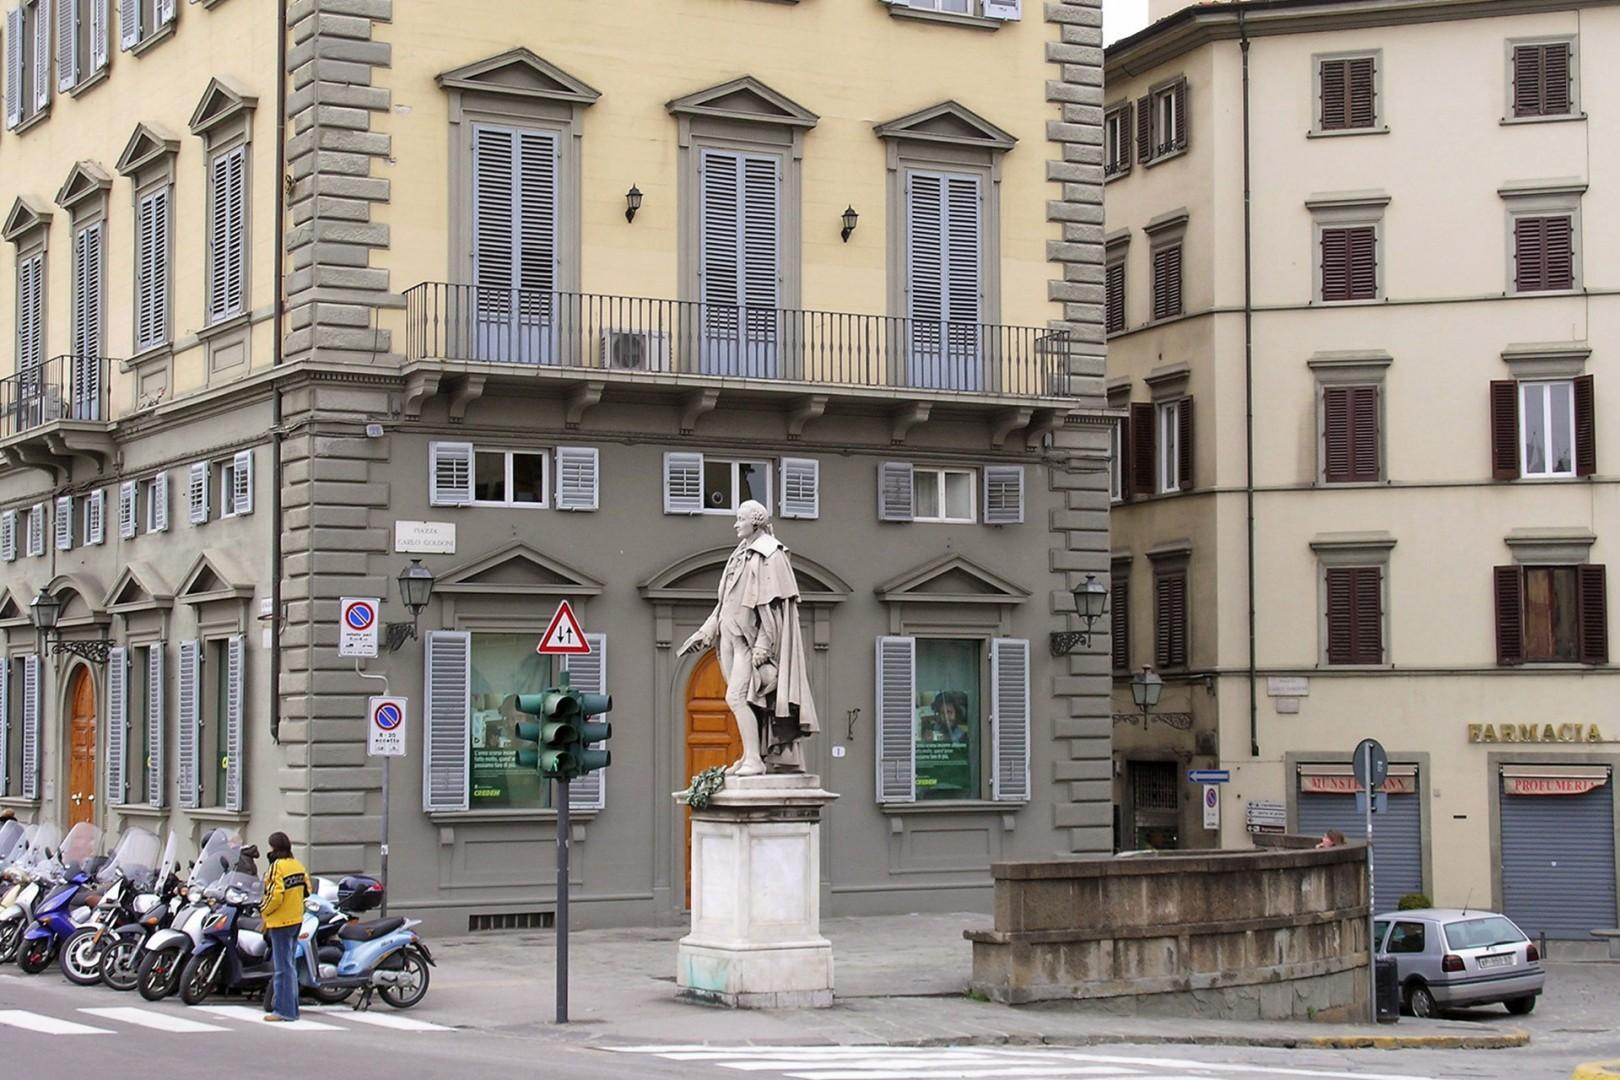 About a 10 minute walk is Piazza Goldoni, which is the start of the busier downtown area.